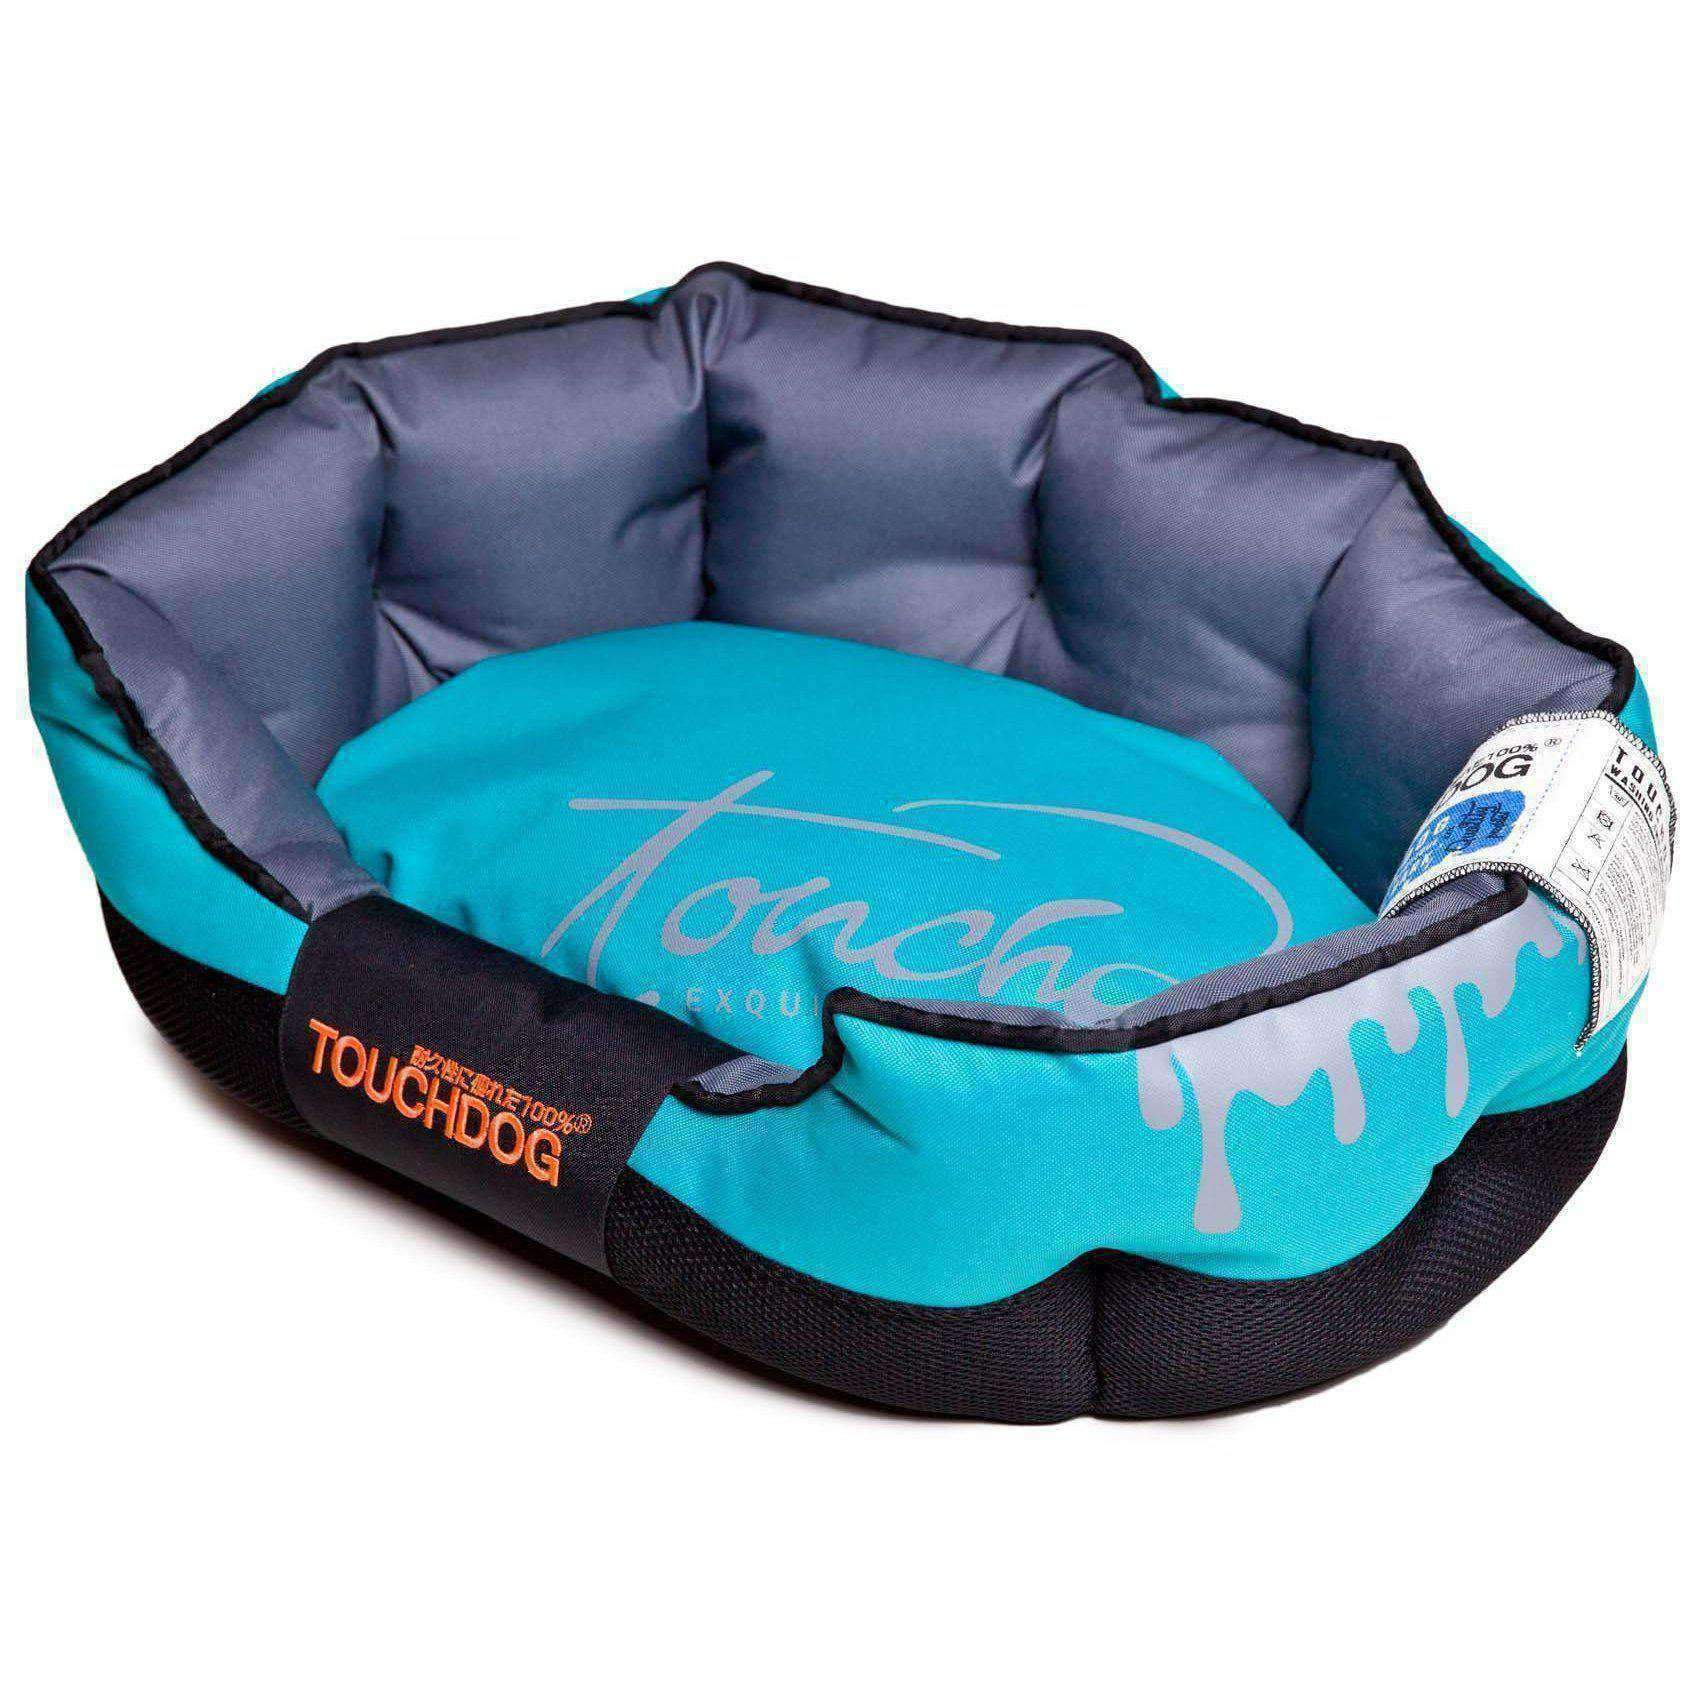 Toughdog Performance-Max Sporty Comfort Cushioned Dog Bed-Touchdog-DirtyFurClothing